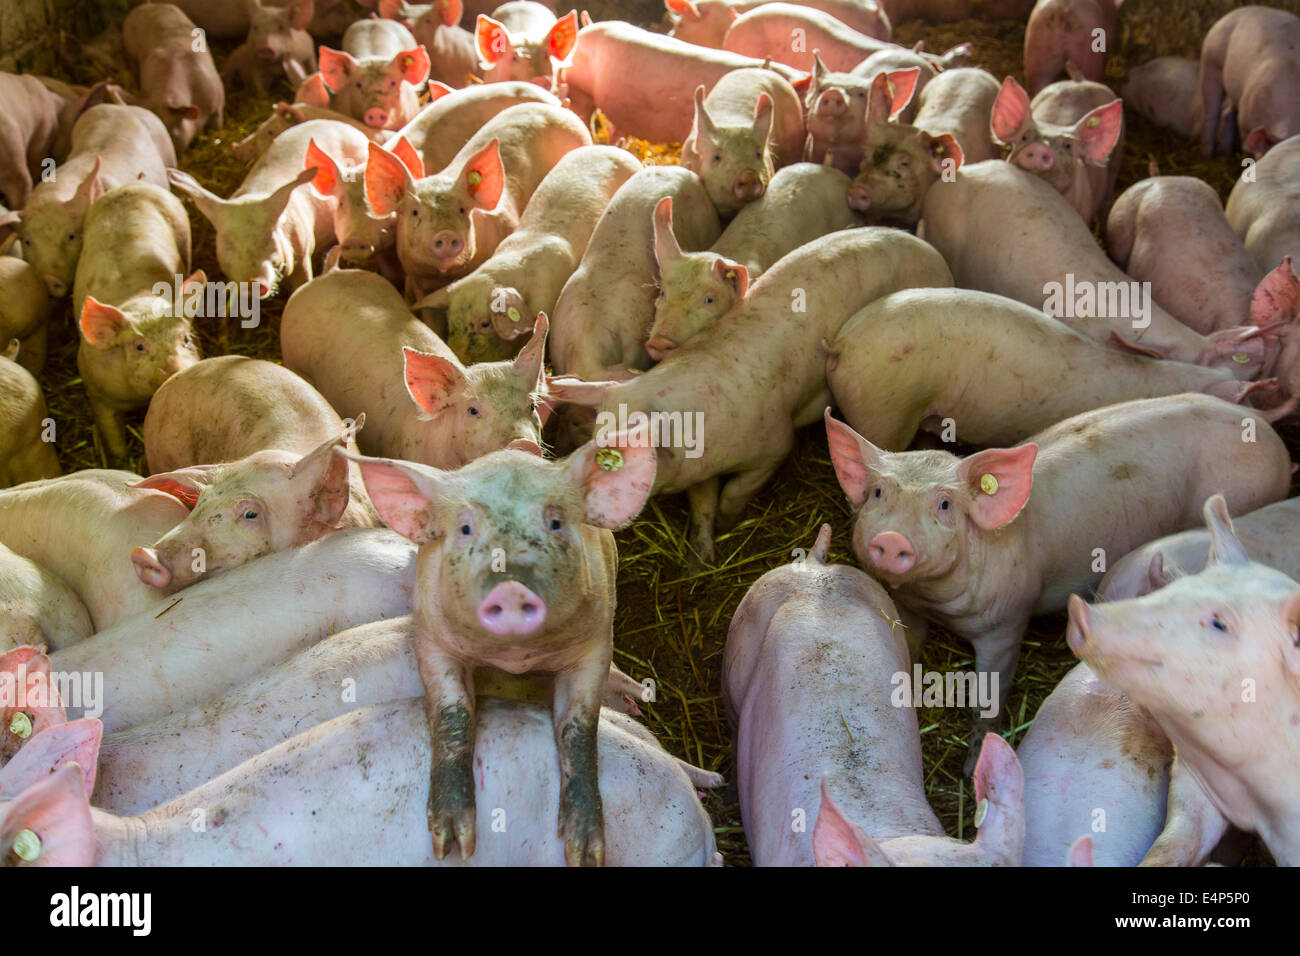 Young piglets in a stable, - Stock Image